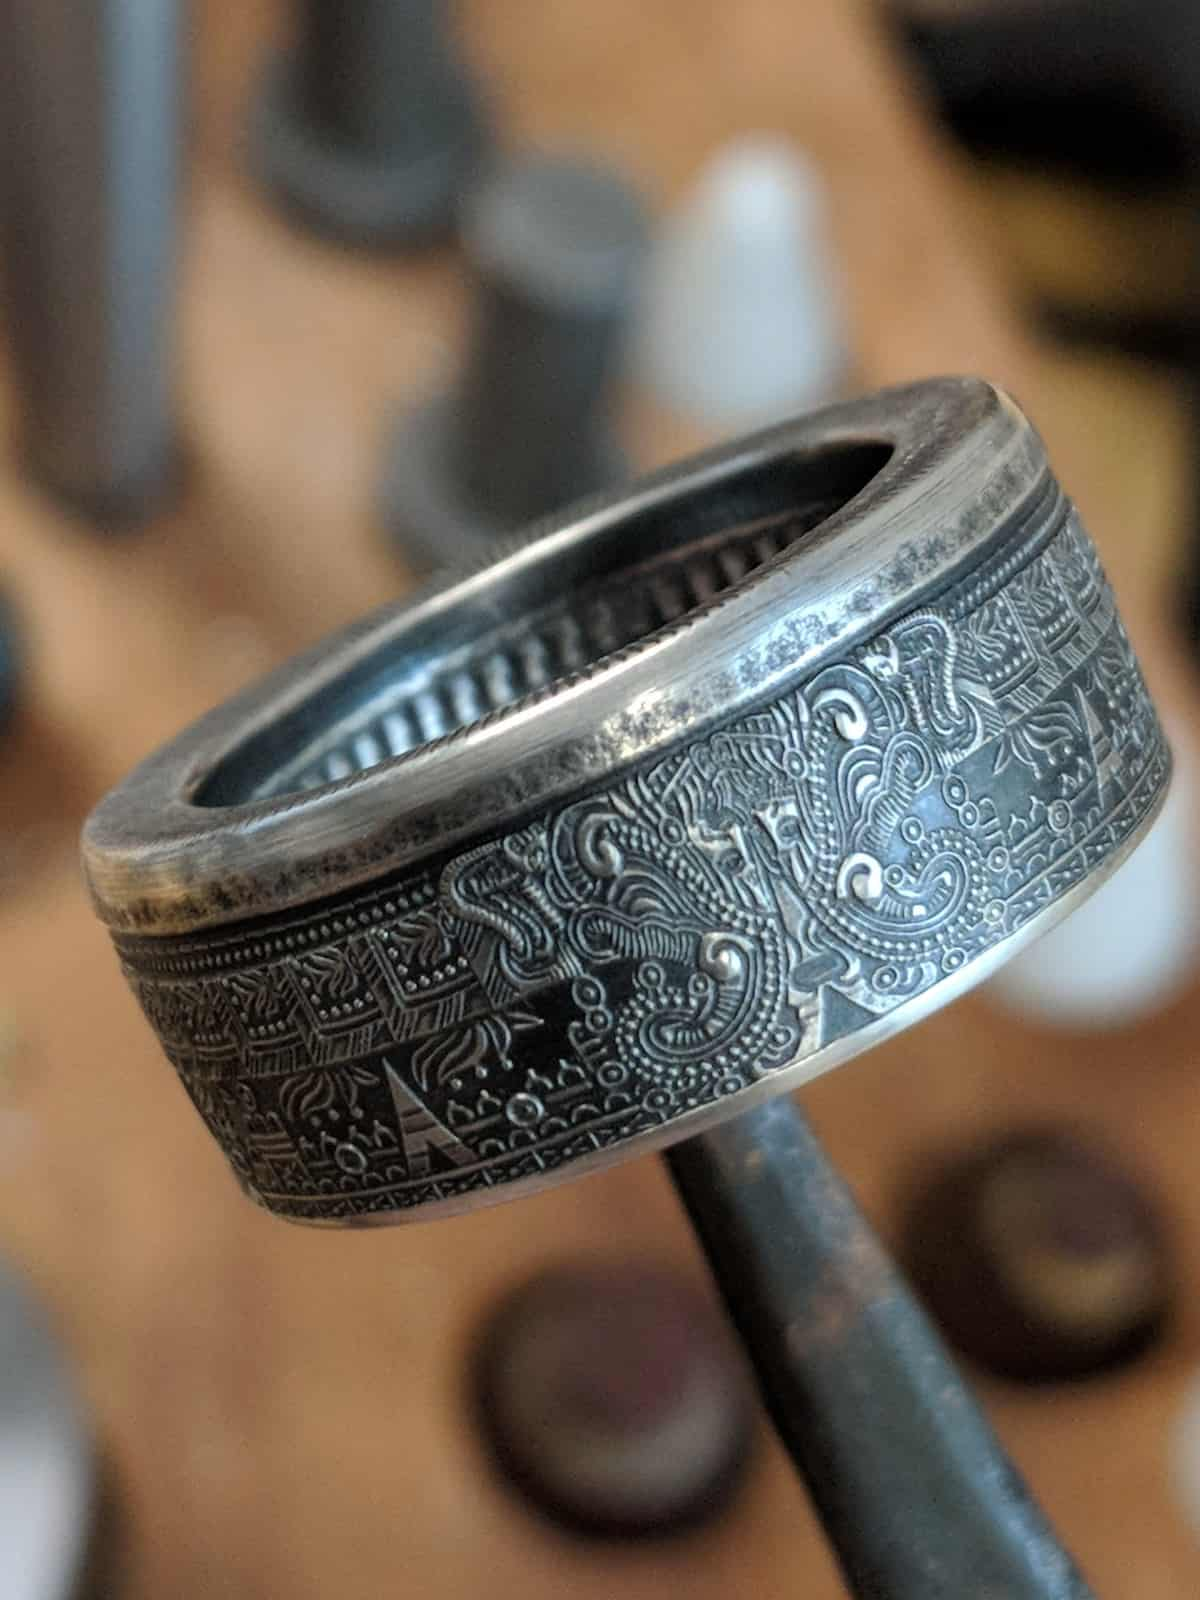 .999 silver Aztec Coin Ring with patina finish.